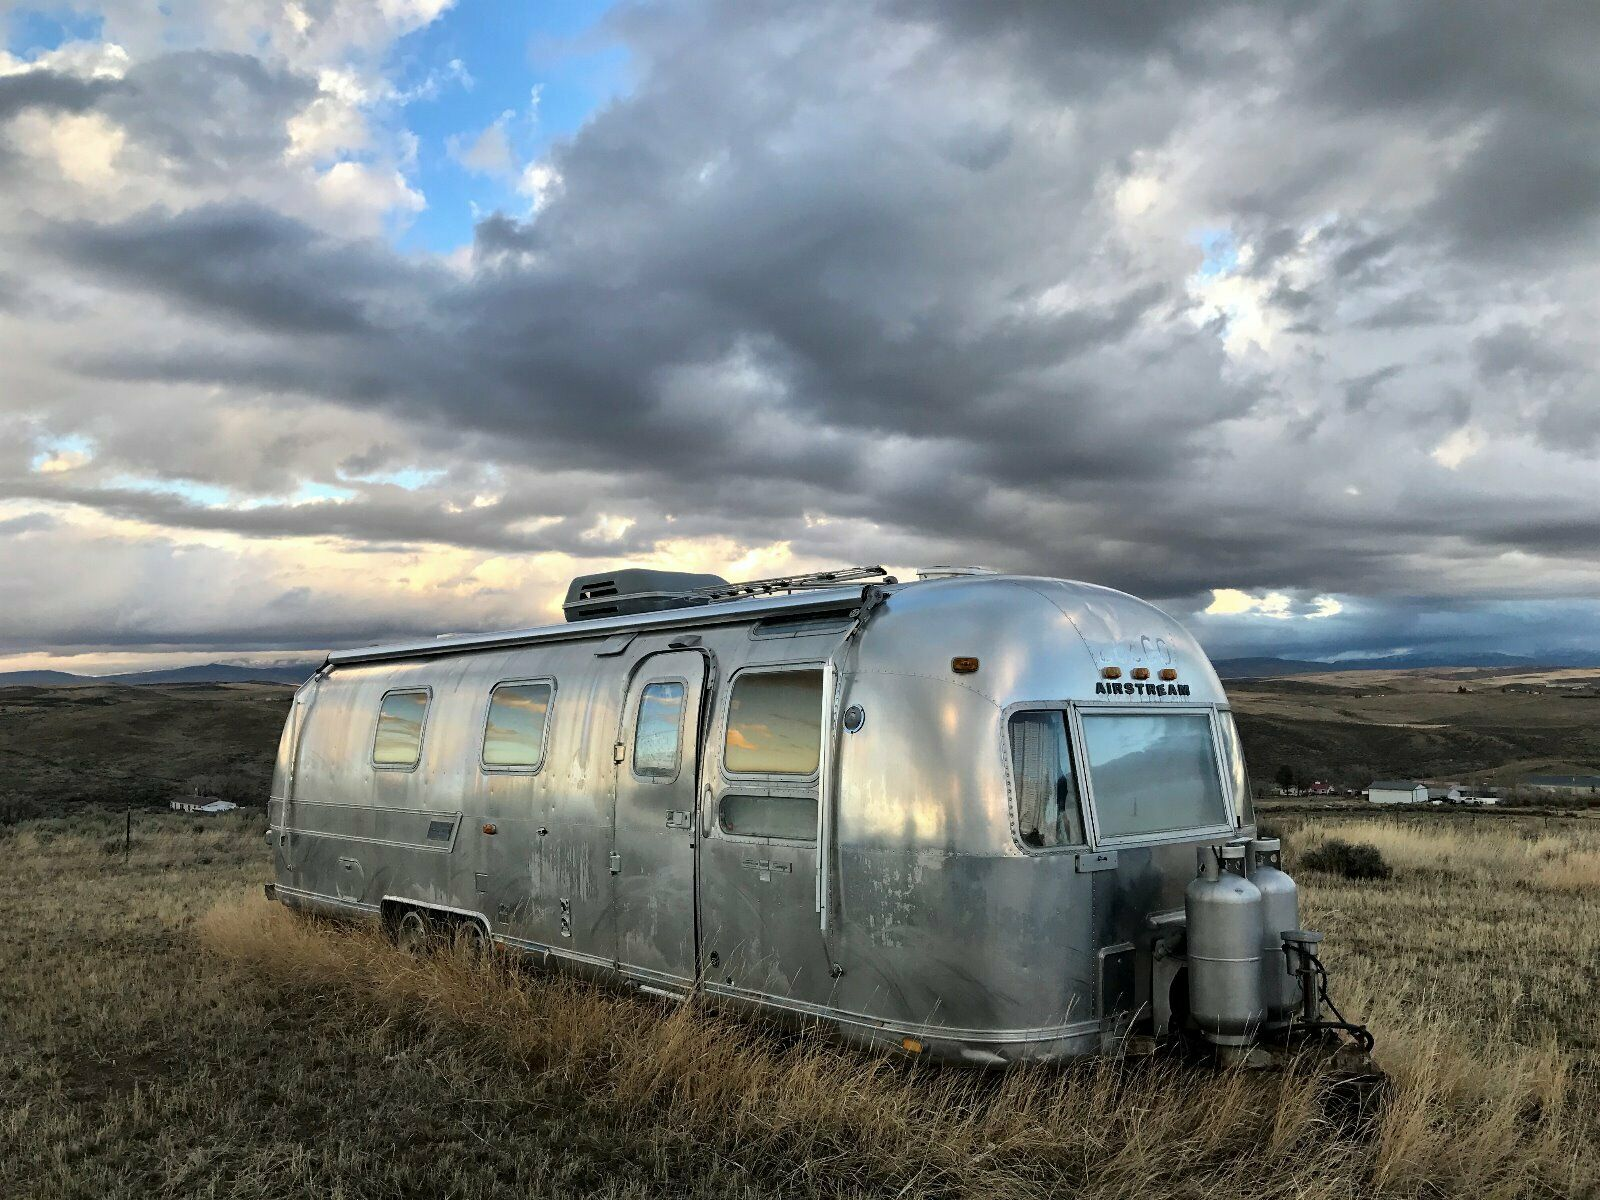 mostly all original 1977 Airstream Sovereign camper for sale